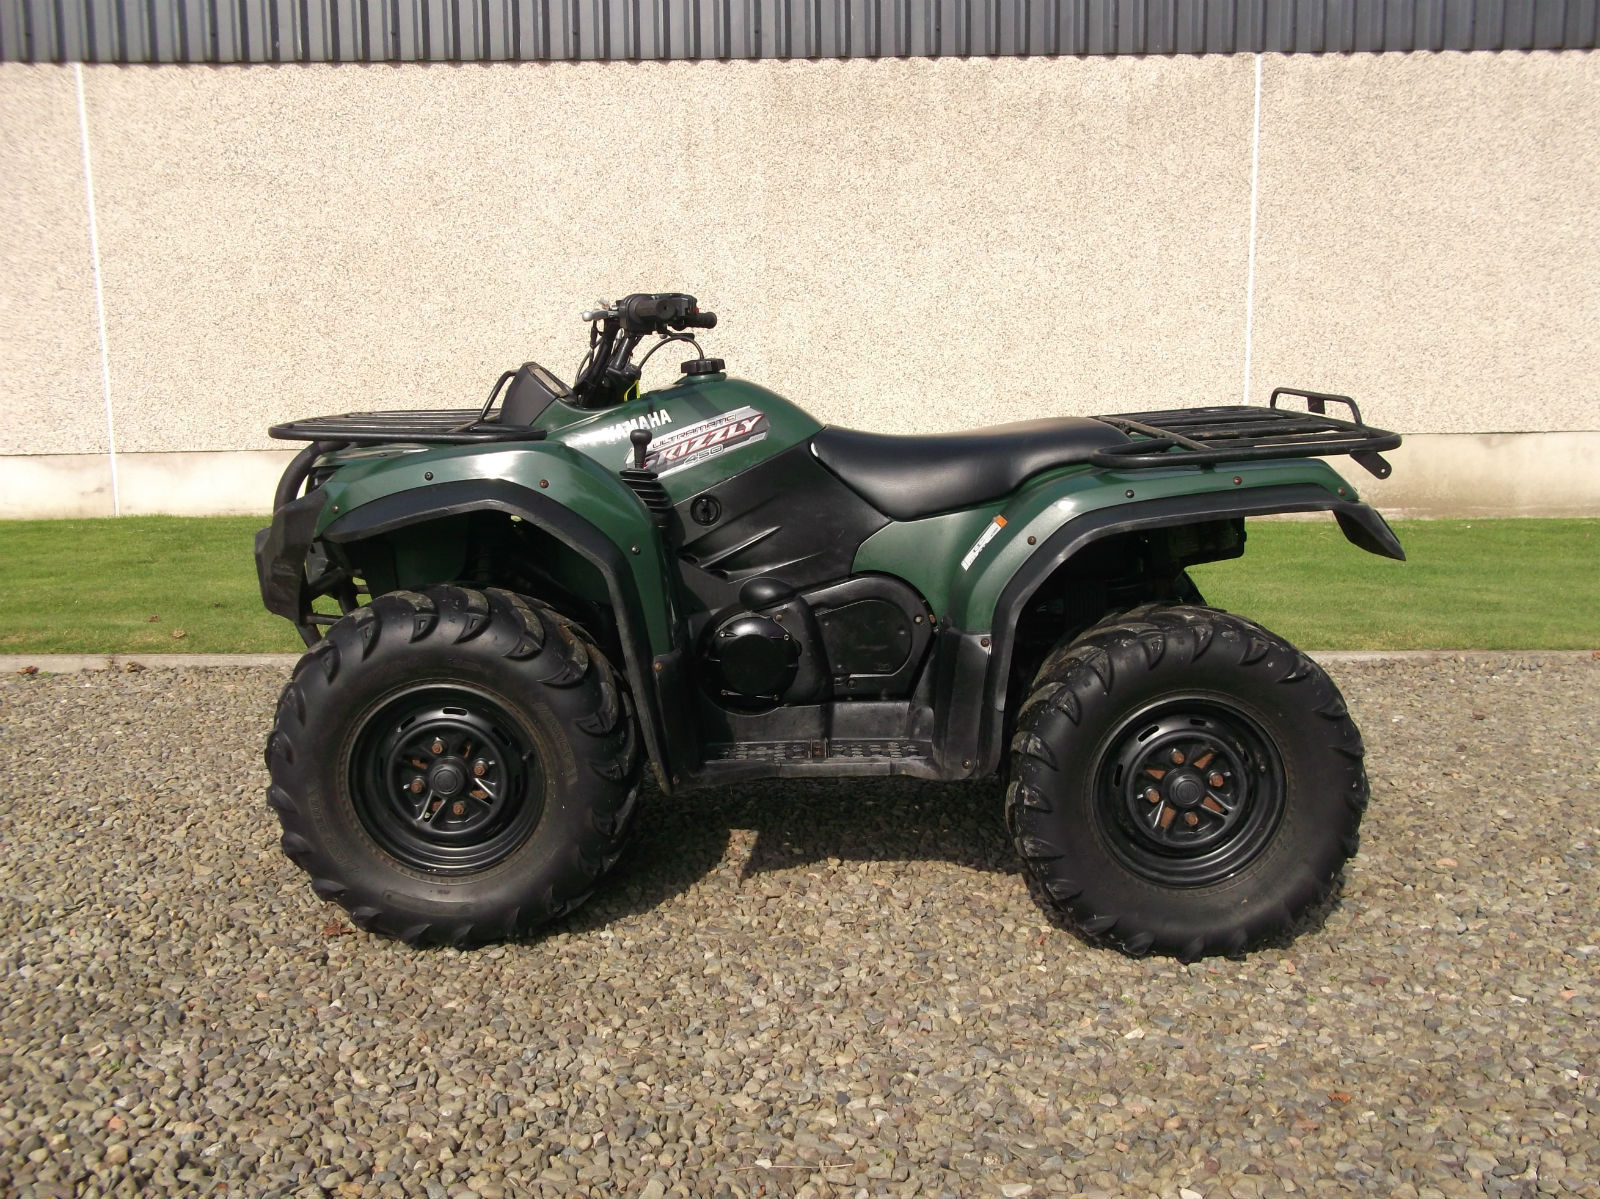 Yamaha grizzly 450 eps 2011 a storry 4x4 for Yamaha grizzly 450 for sale